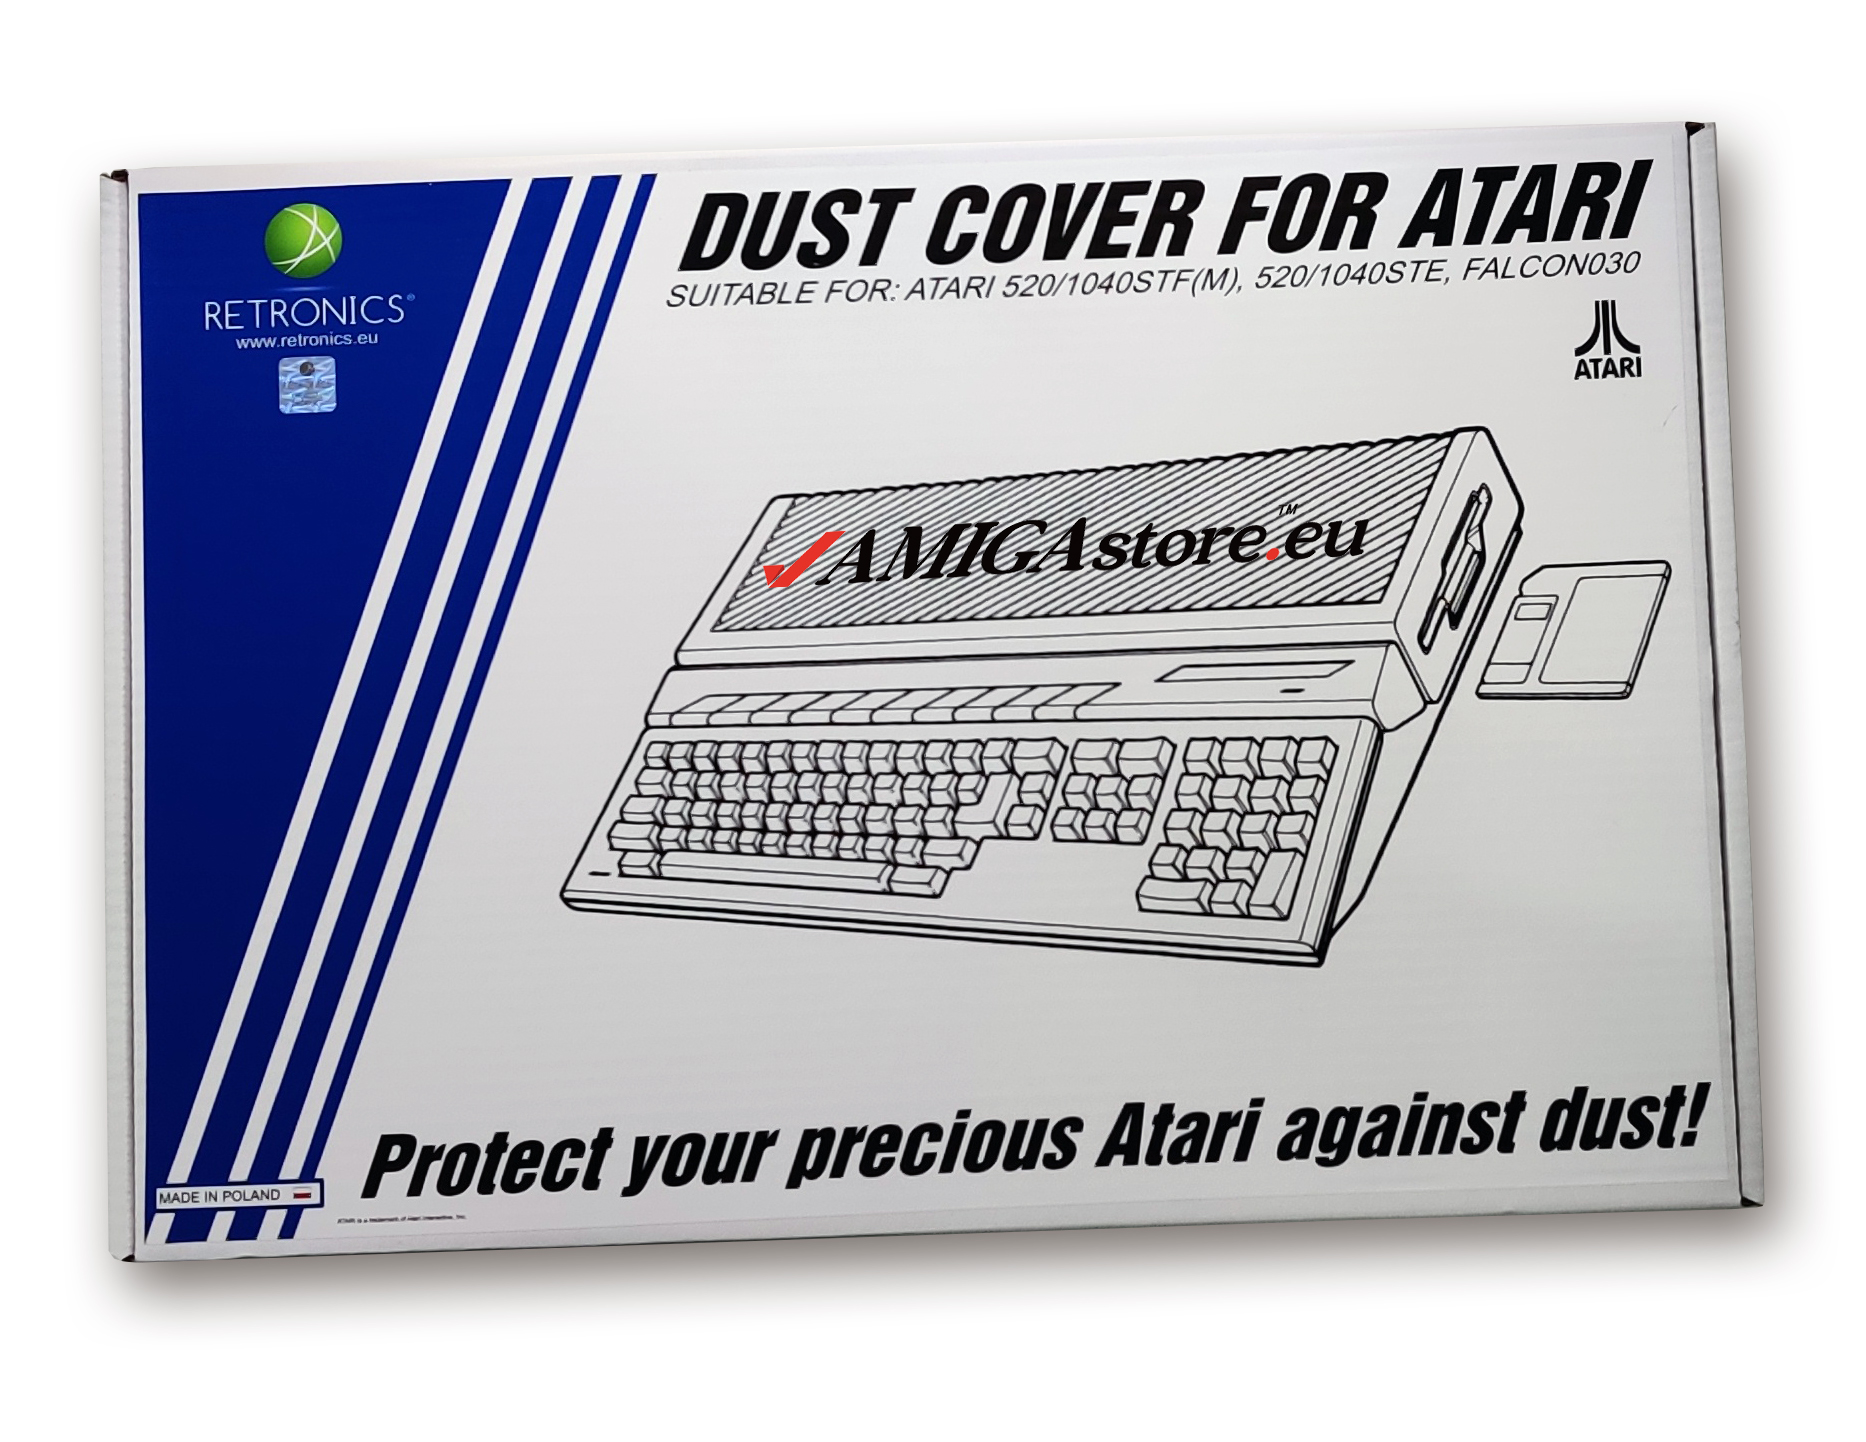 Dust Cover for 16-bit Atari Computers